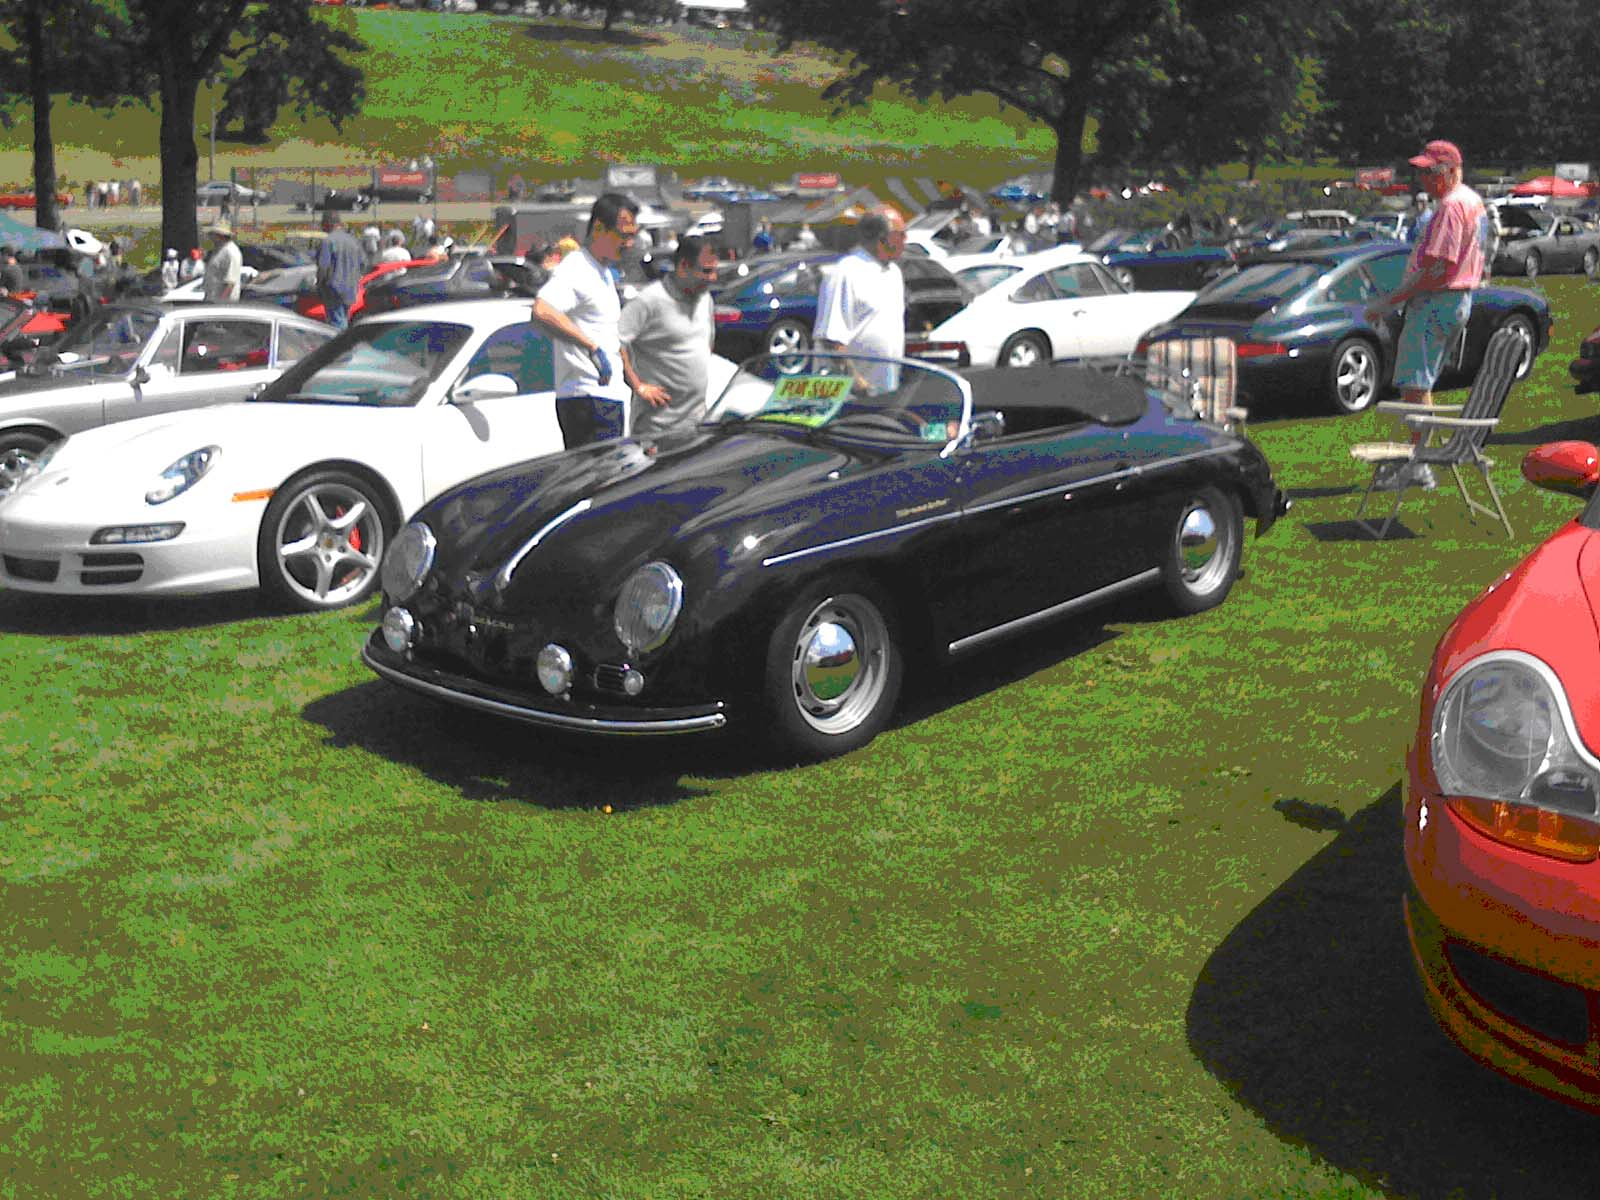 Porsche 356 in the field at the Pittsburgh Vintage Grand Prix